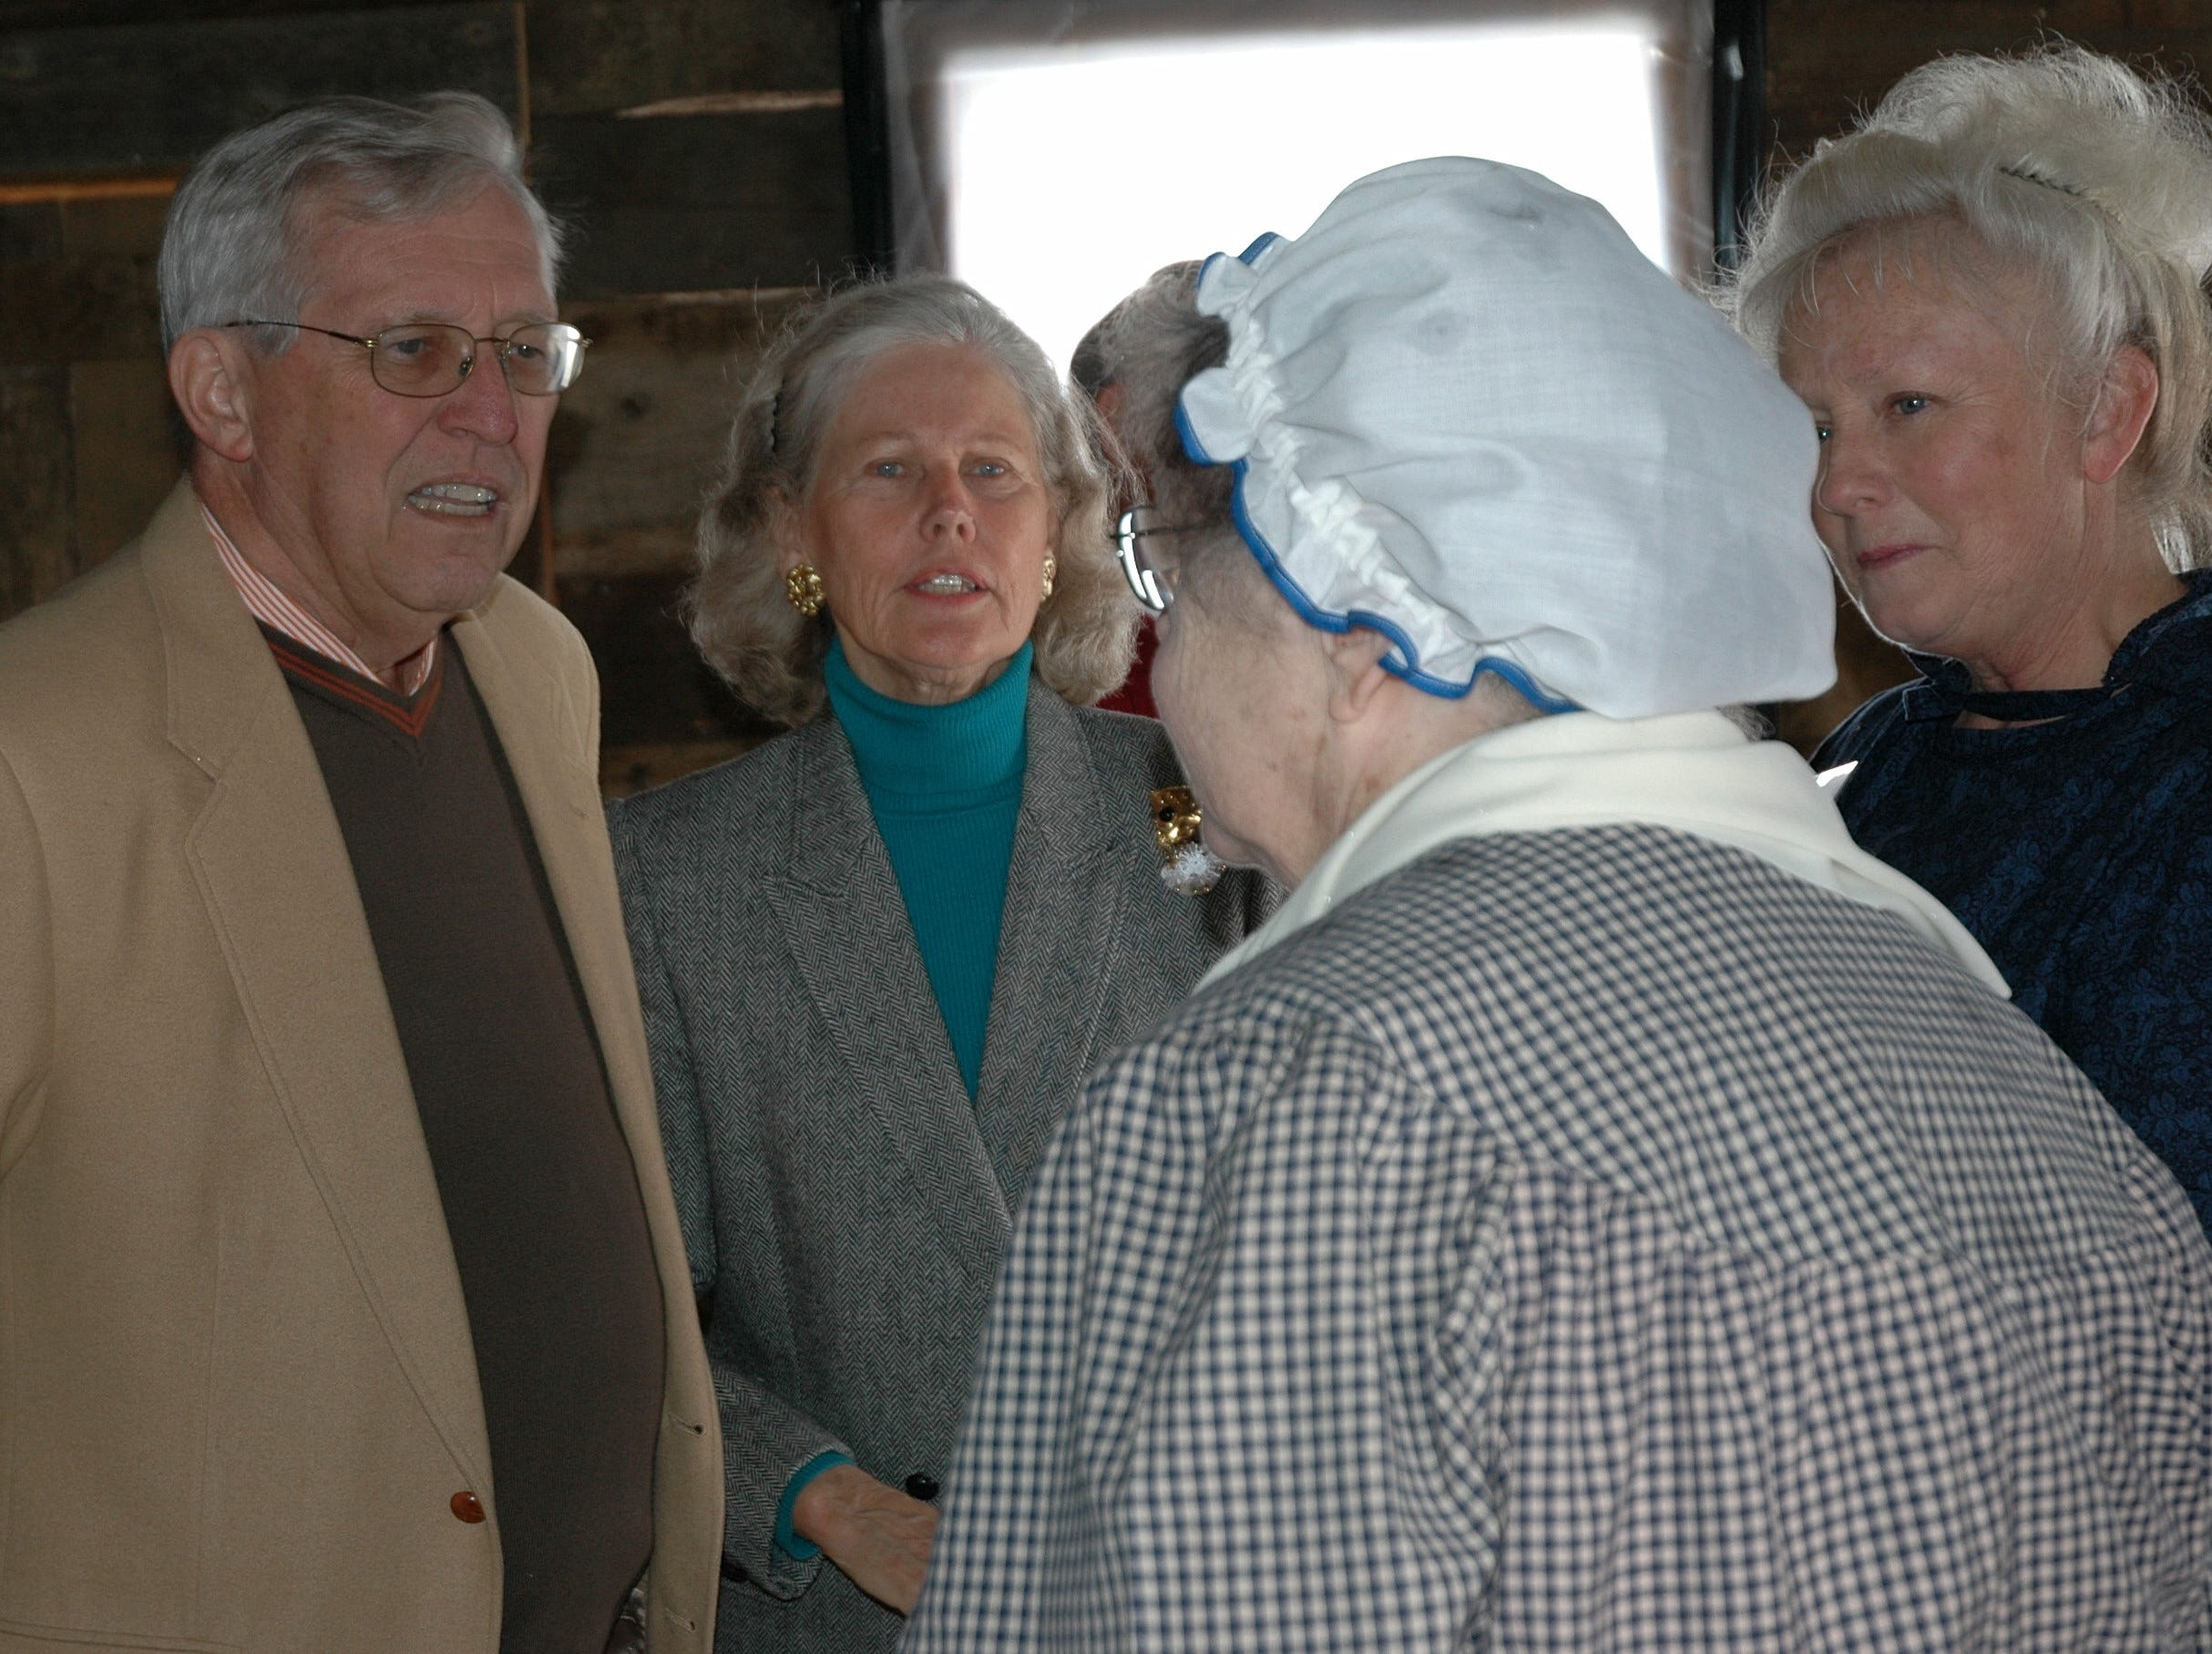 Former Tennessee Gov. Don Sundquist and his wife, Martha, talk with Gaynelle Kyser and Ruth Davis, who were conducting cooking demonstrations in the Cardwell cabin at the new Great Smoky Mountains Heritage Center in Townsend. The center held its grand opening Sunday, 2.12.06. The former governor, now a resident of Townsend, is on the center's board of directors. 2006